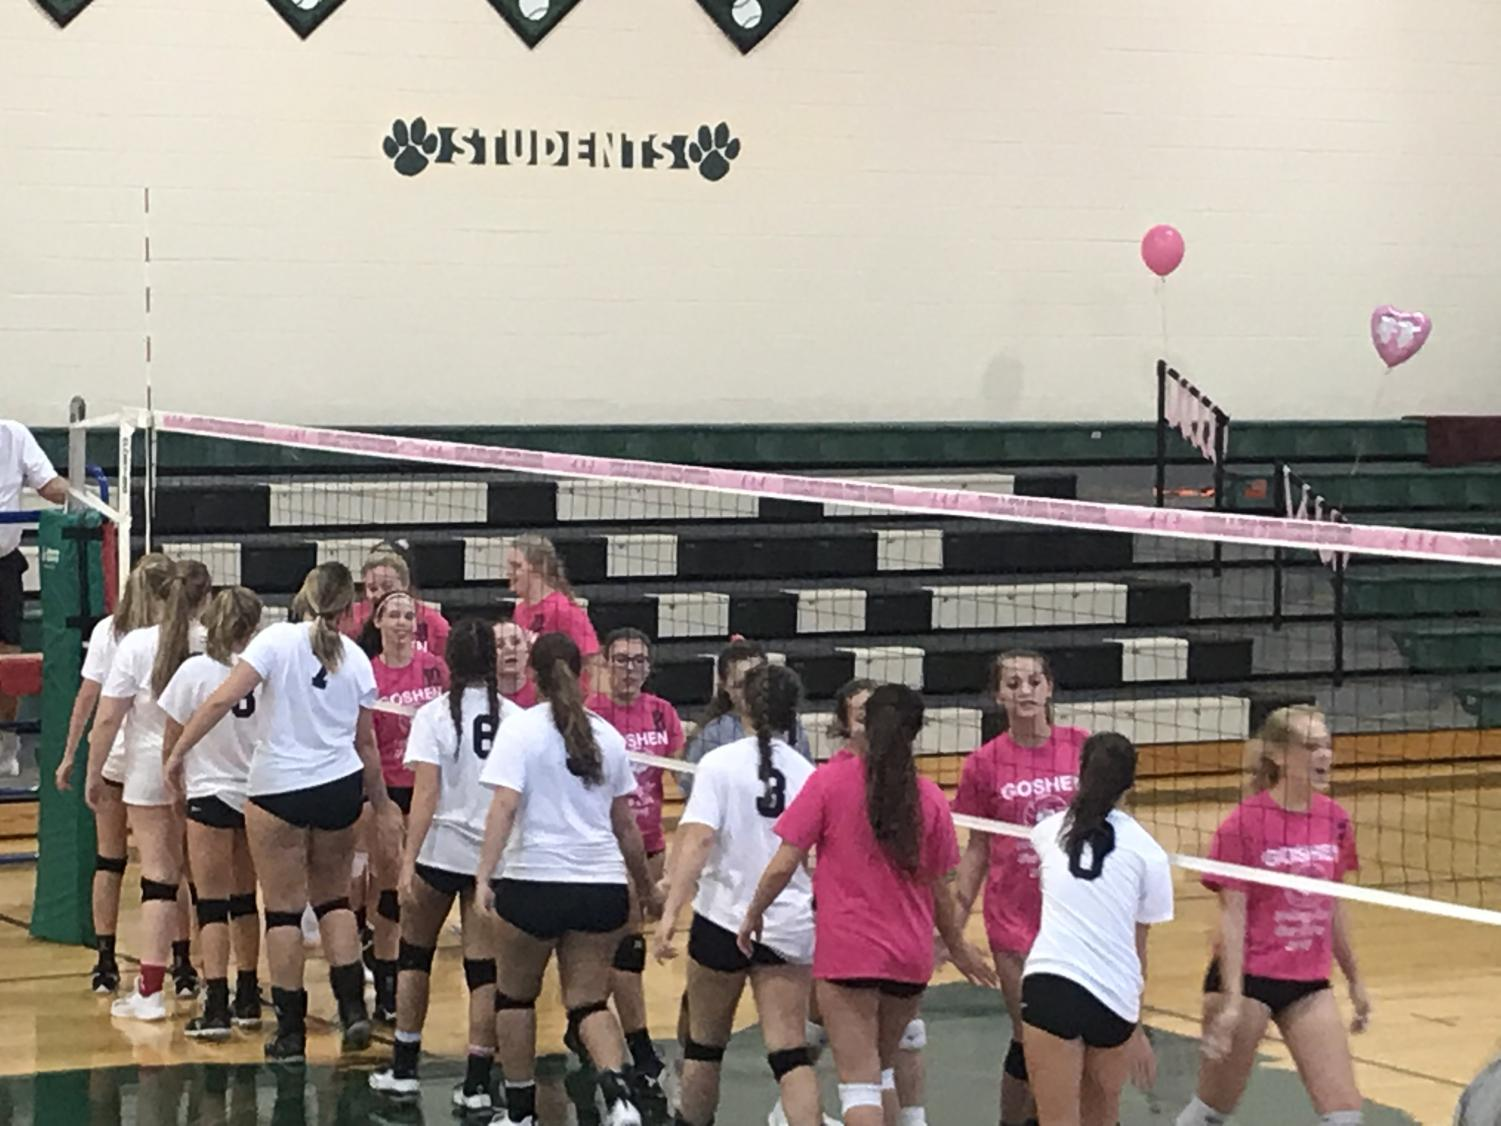 The volleyball team decked out in pink after the game.